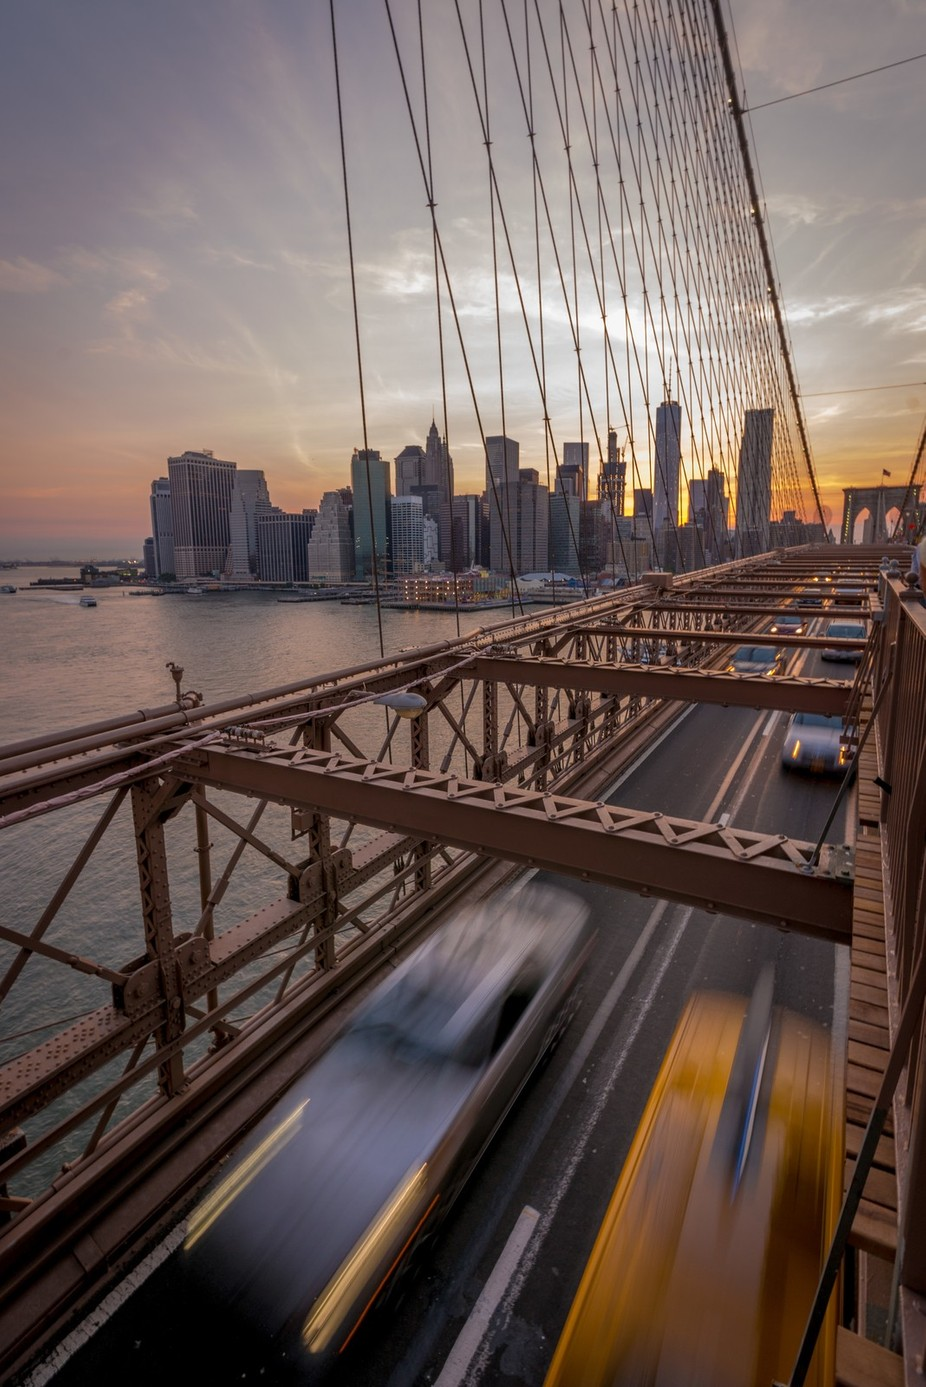 Brooklyn bridge by AnthonyAlpha - New York Photo Contest